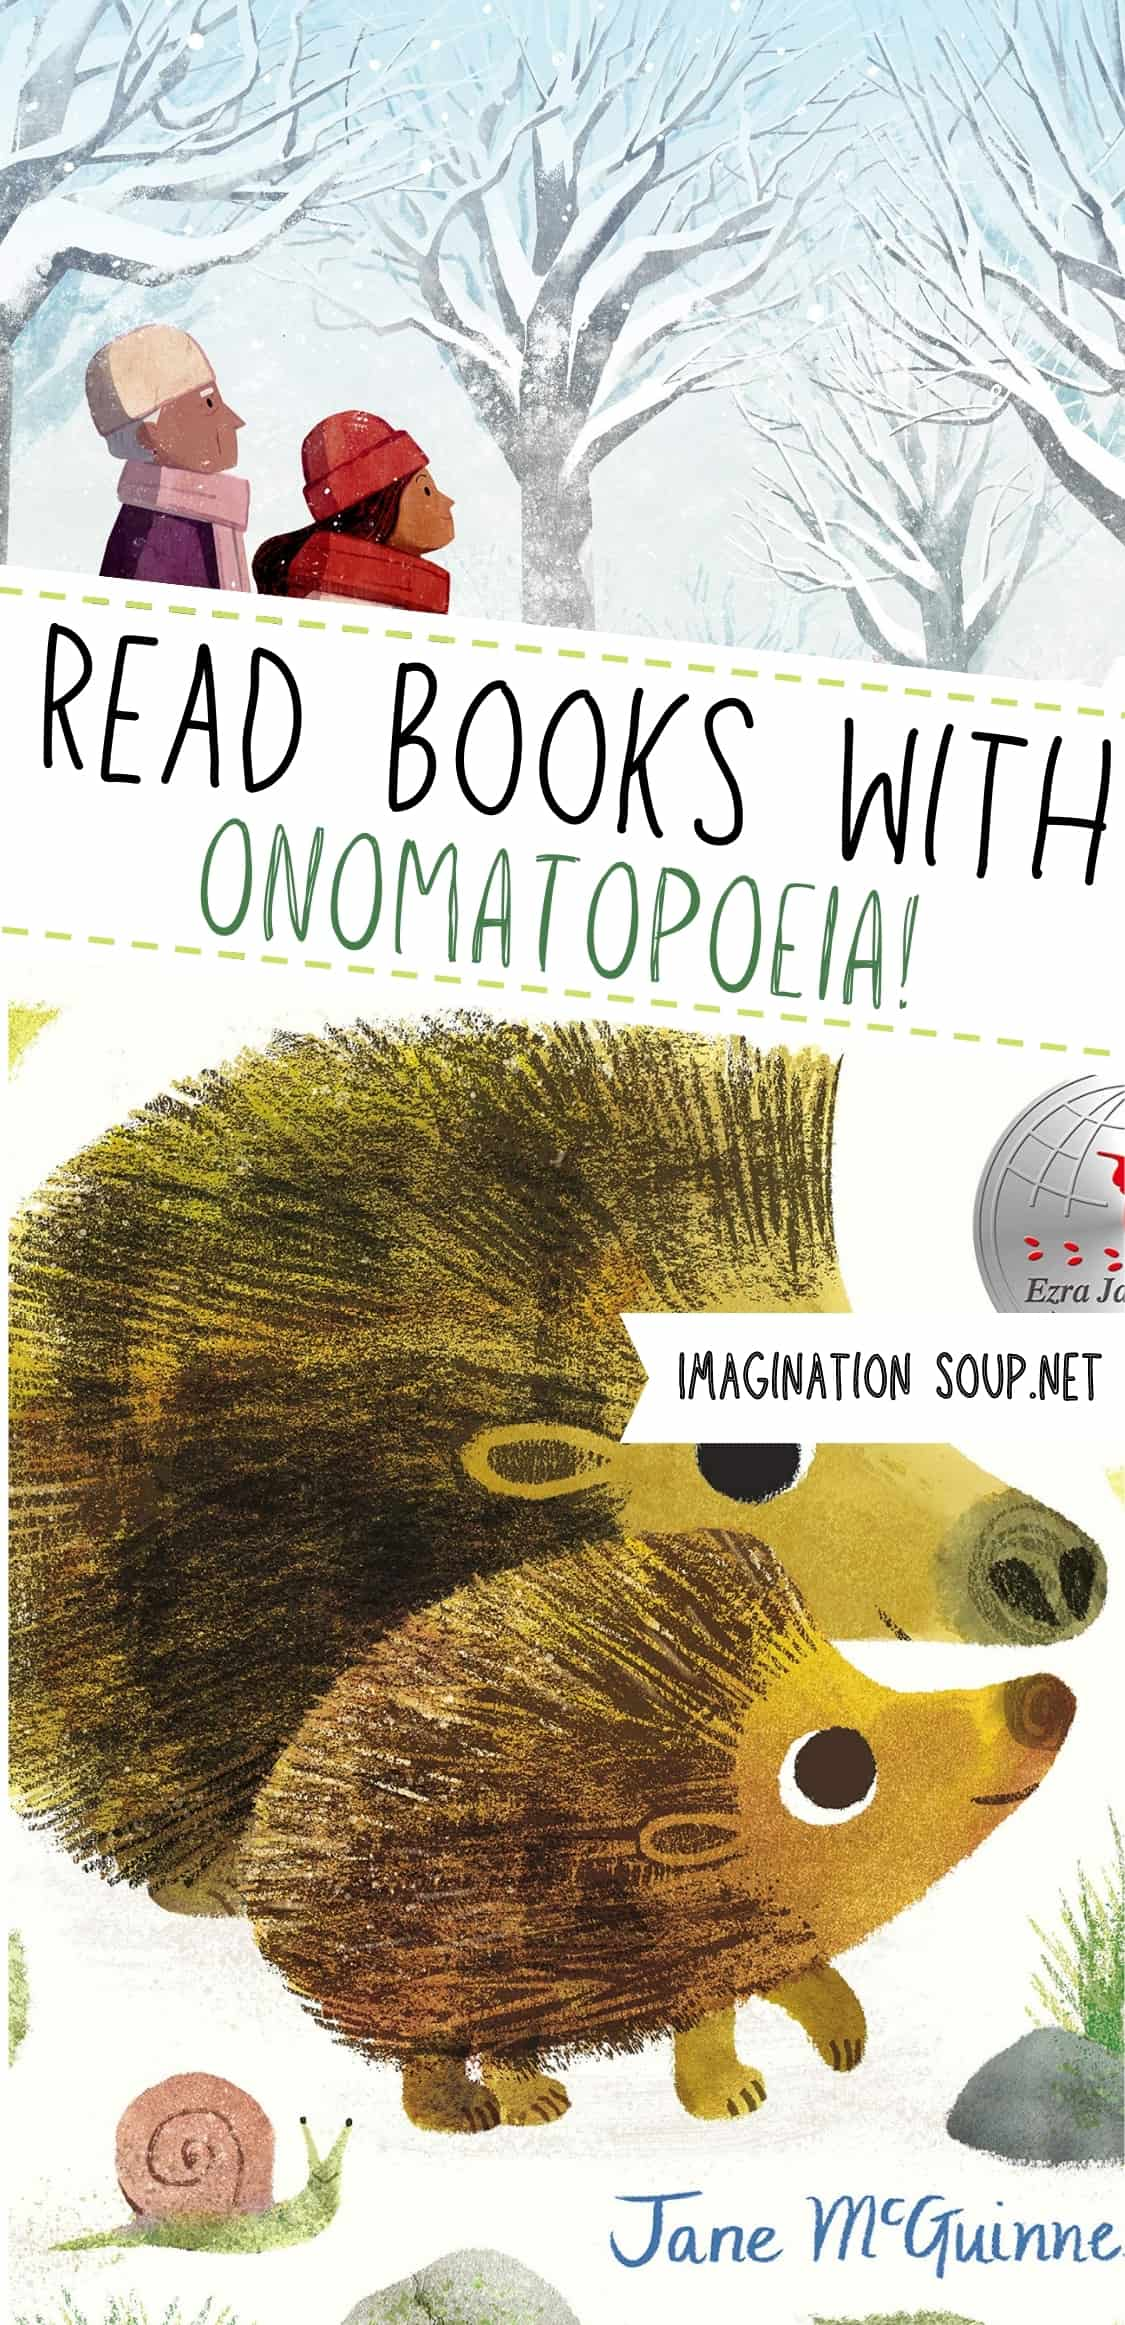 Picture Books with SOUNDS (Onomatopoeia)